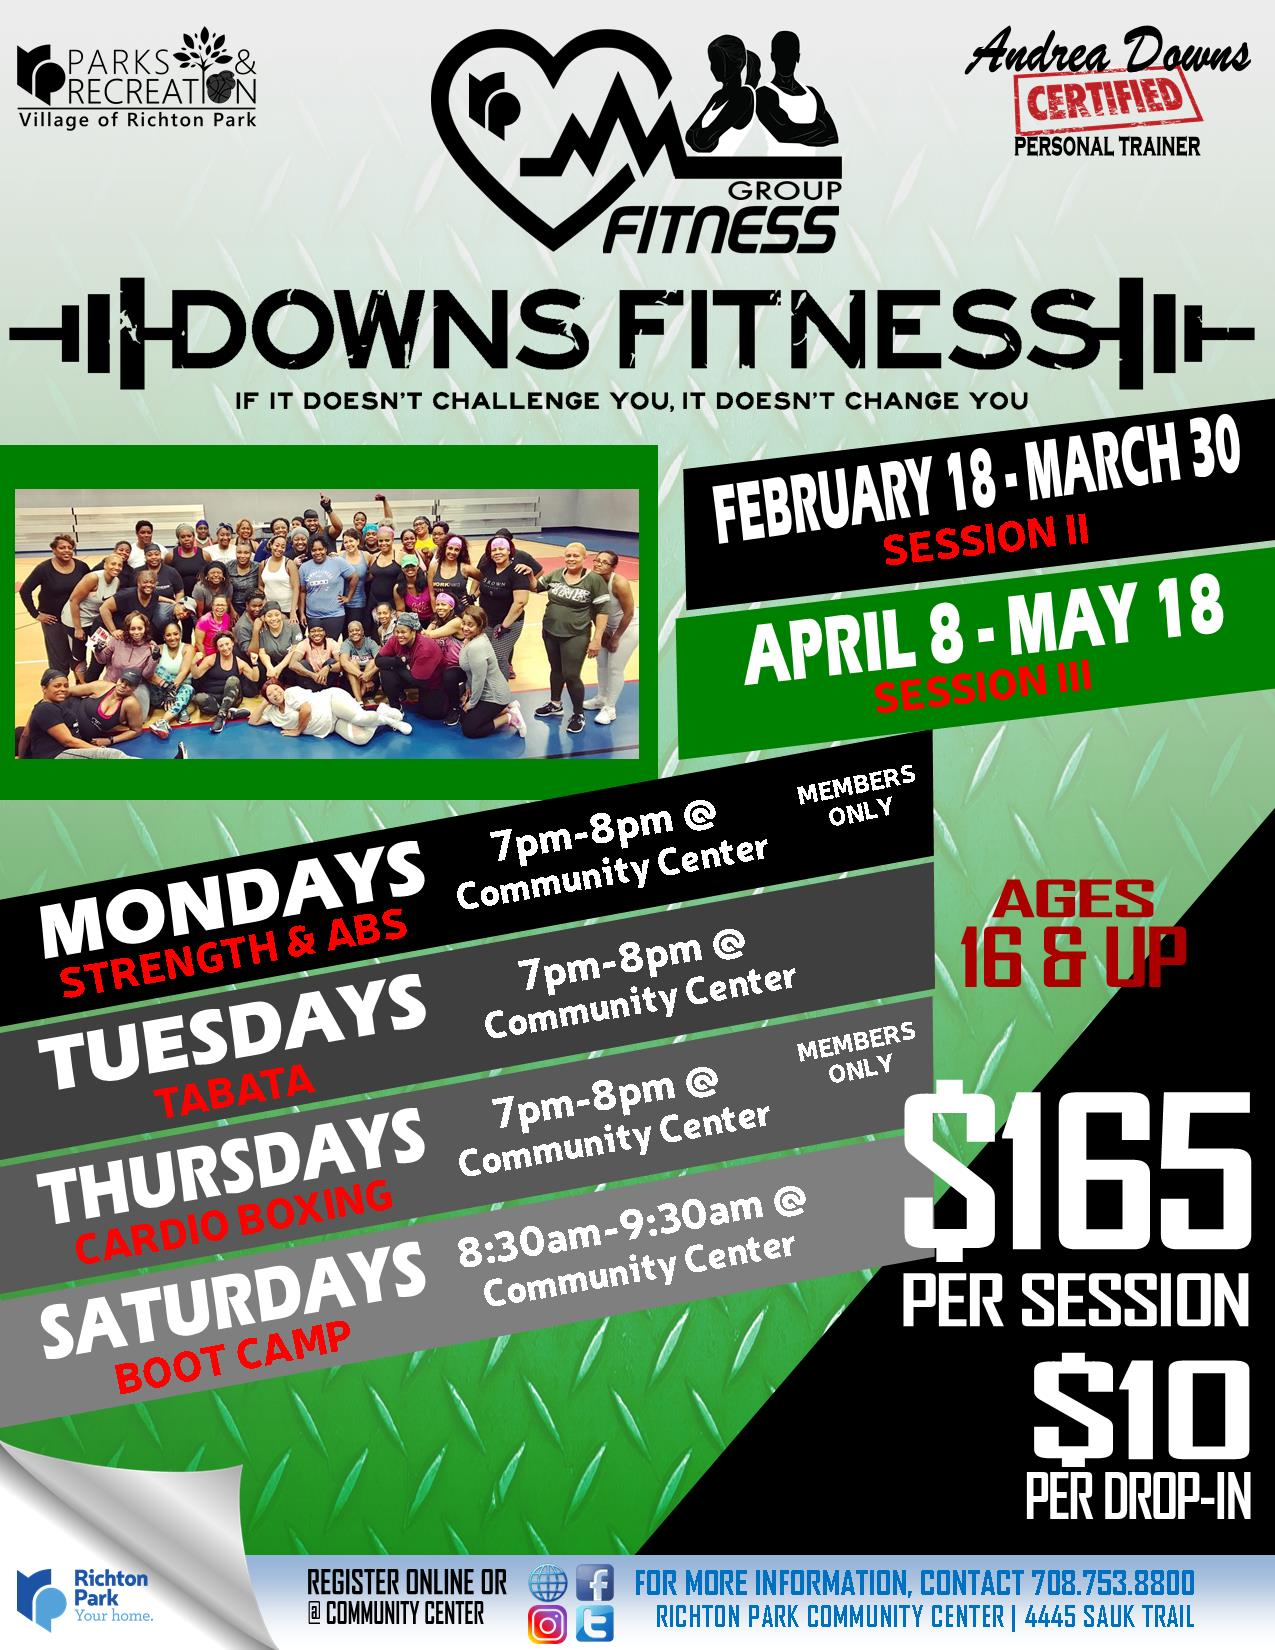 Group Fitness - Downs Fitness WINTER 2019.5 Feb-Mar